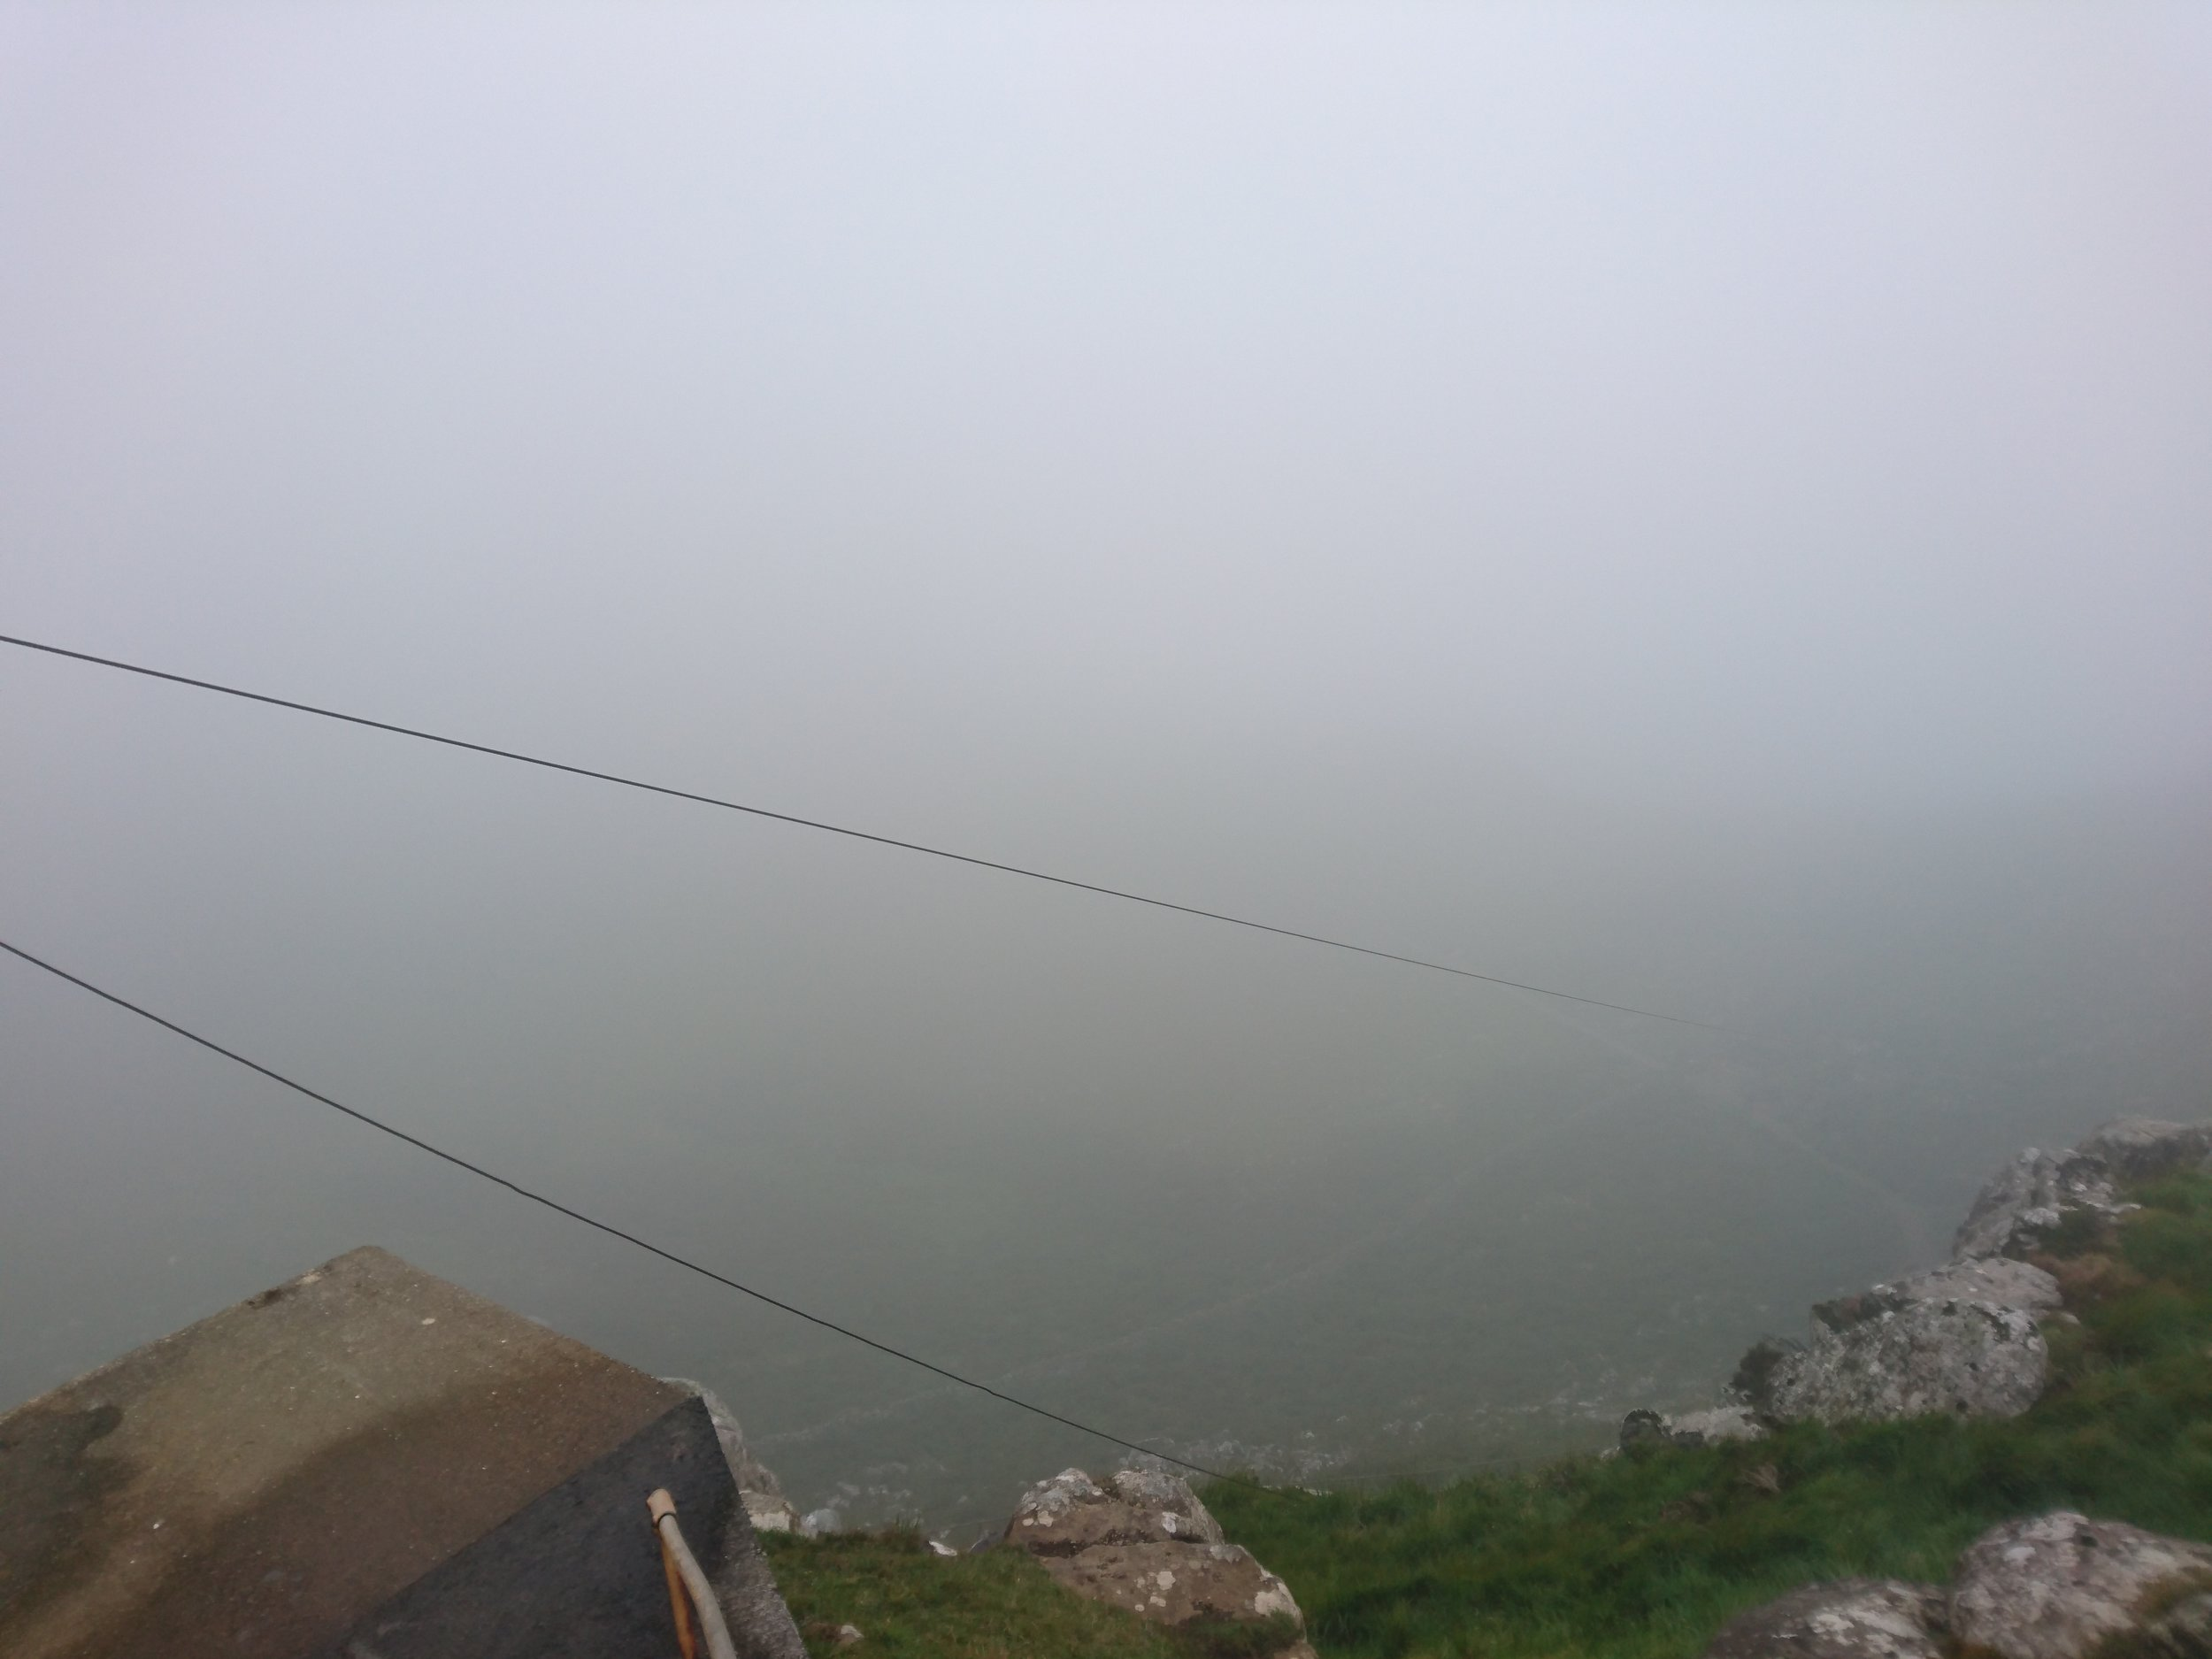 Neist Point is down there somewhere